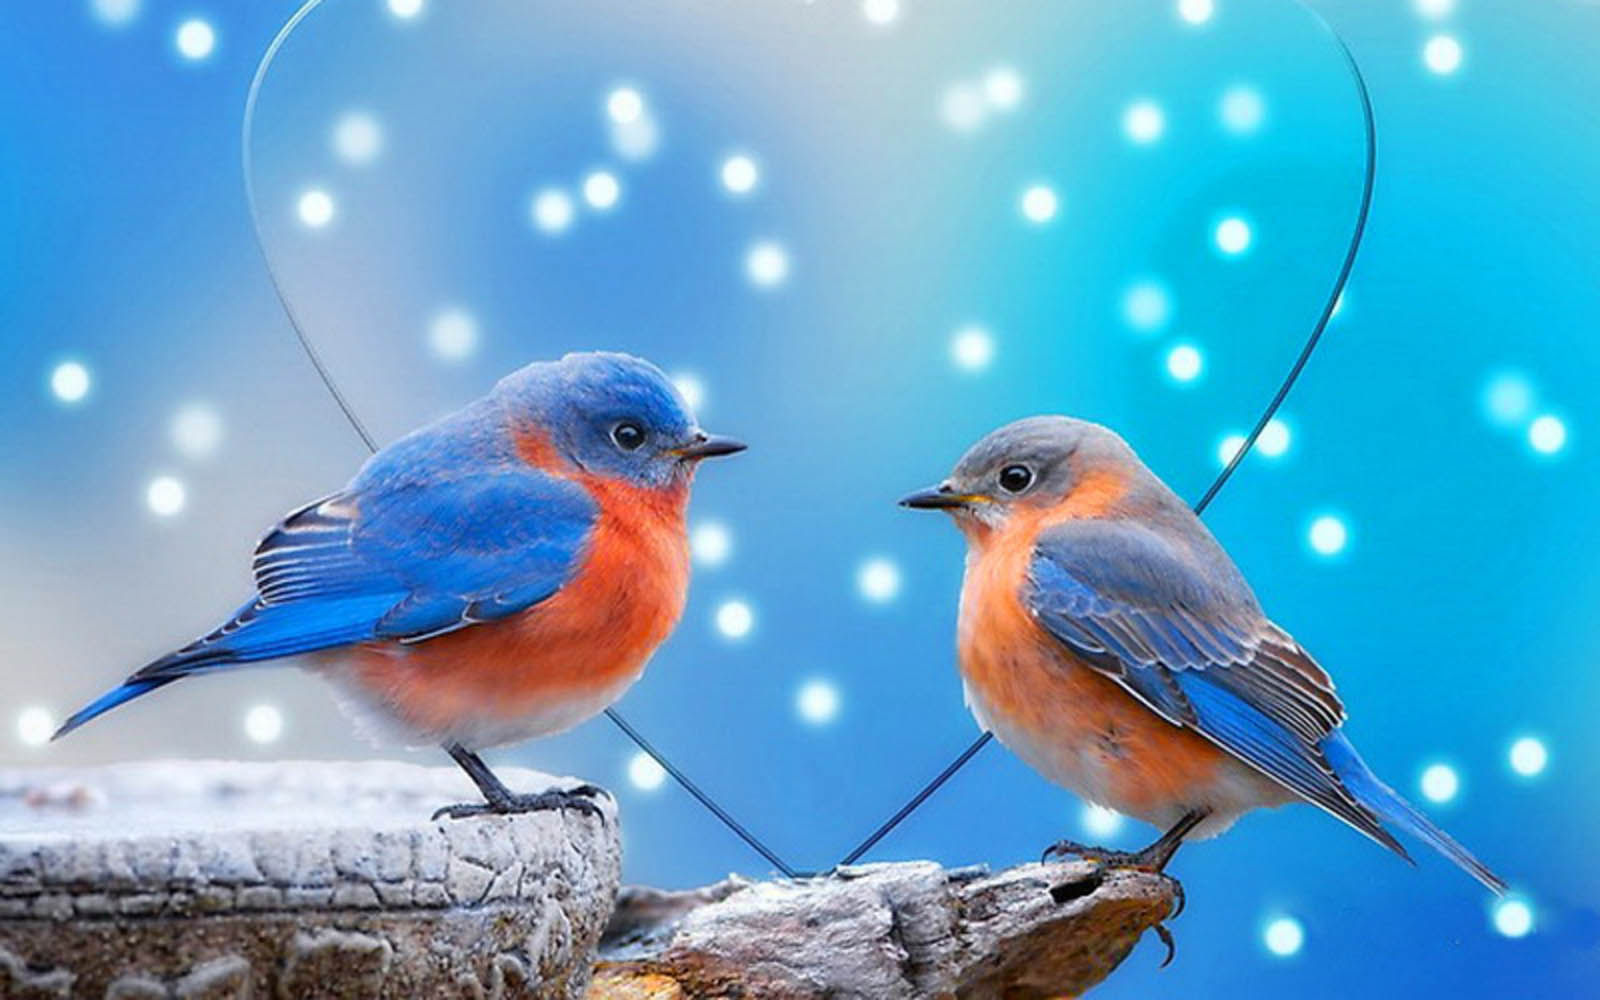 Dwnld Cute Little Bird Walpaper Free Fr Mobile: Love Birds Wallpapers:Image For Pc Wallpaper